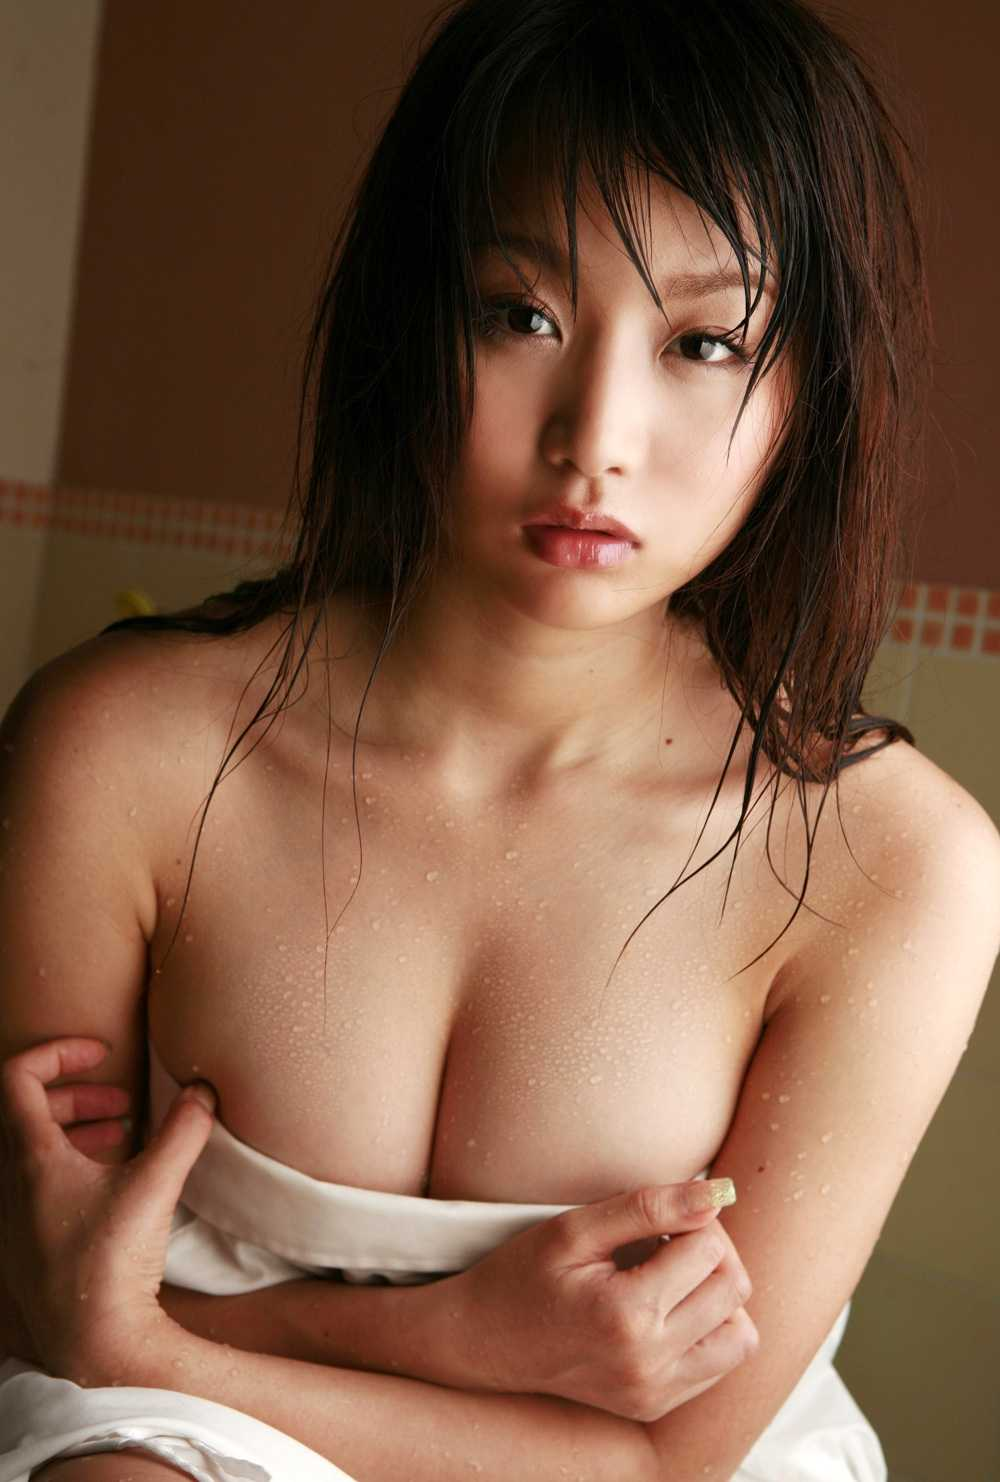 That's one tits milk japan show hot